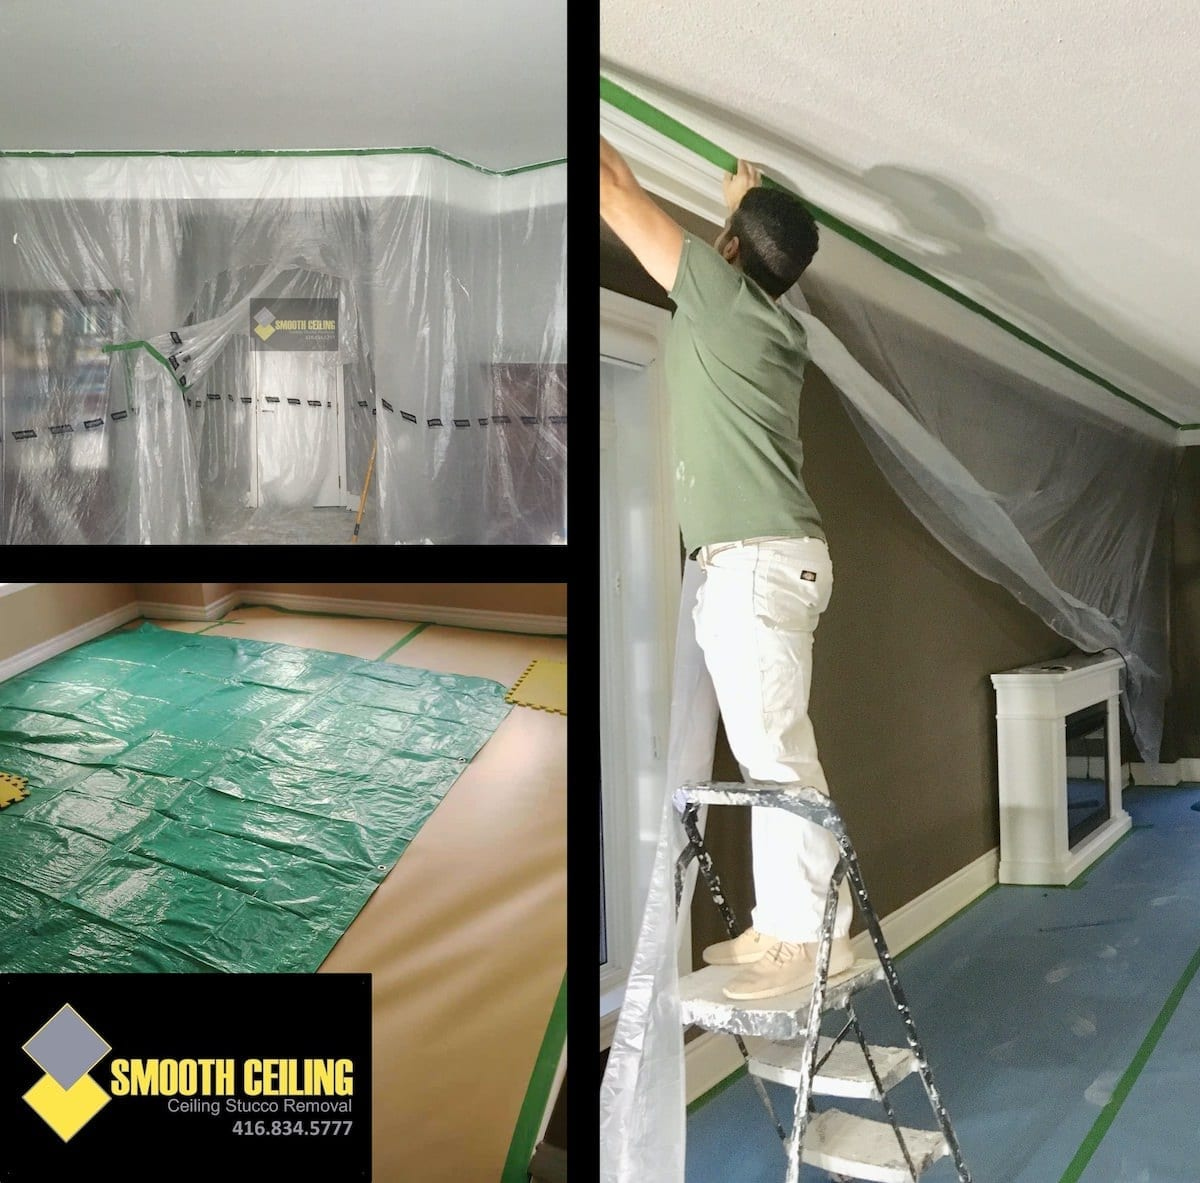 The Smooth Ceiling Process